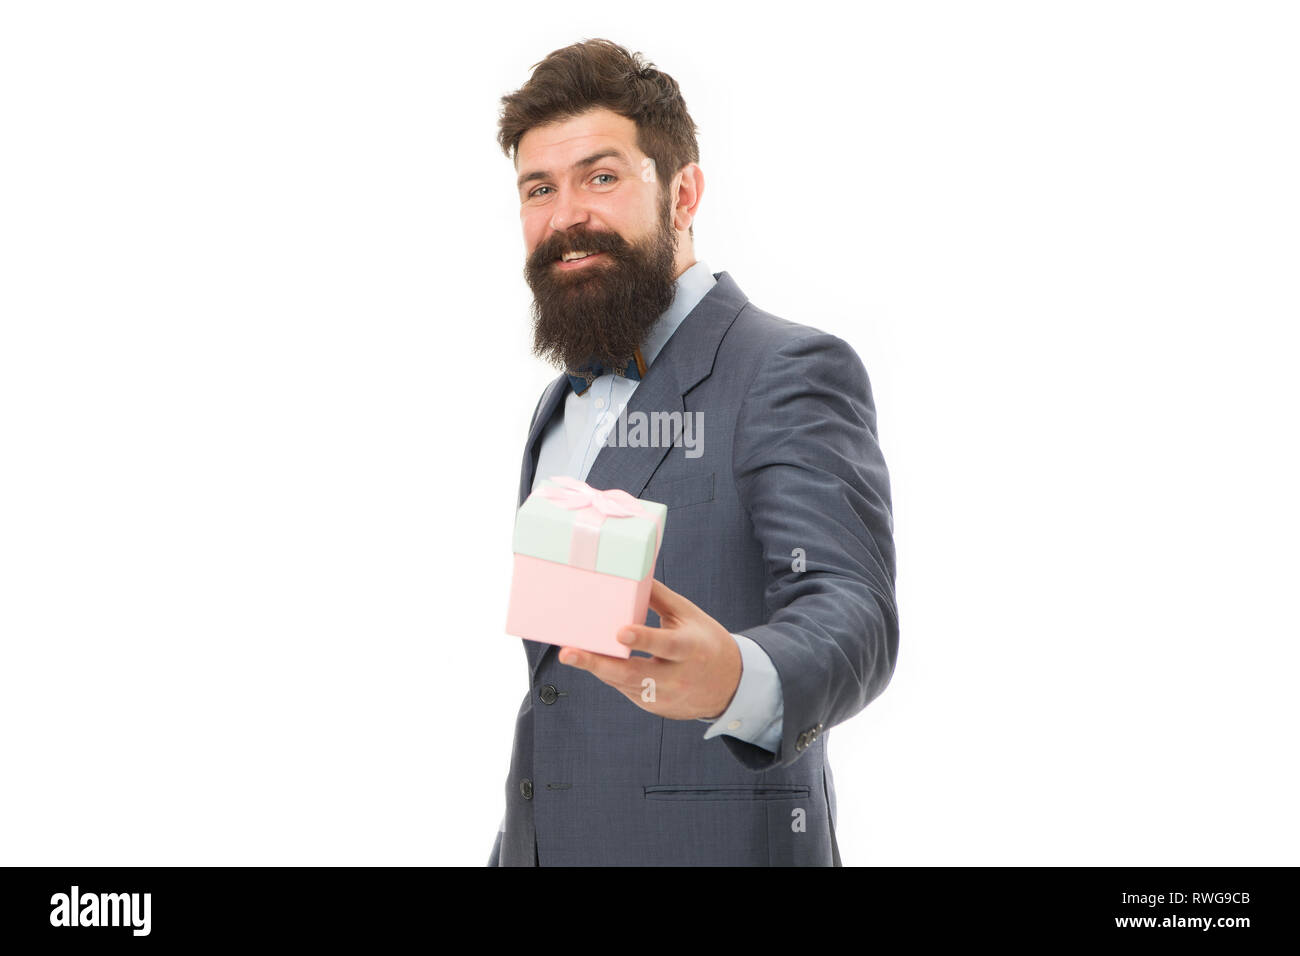 Nice present. Gift for spouse. Romantic surprise. Man formal suit hold gift box white background. Love and romantic feelings concept. Valentines day gift. Man with beard celebrate valentines day. - Stock Image